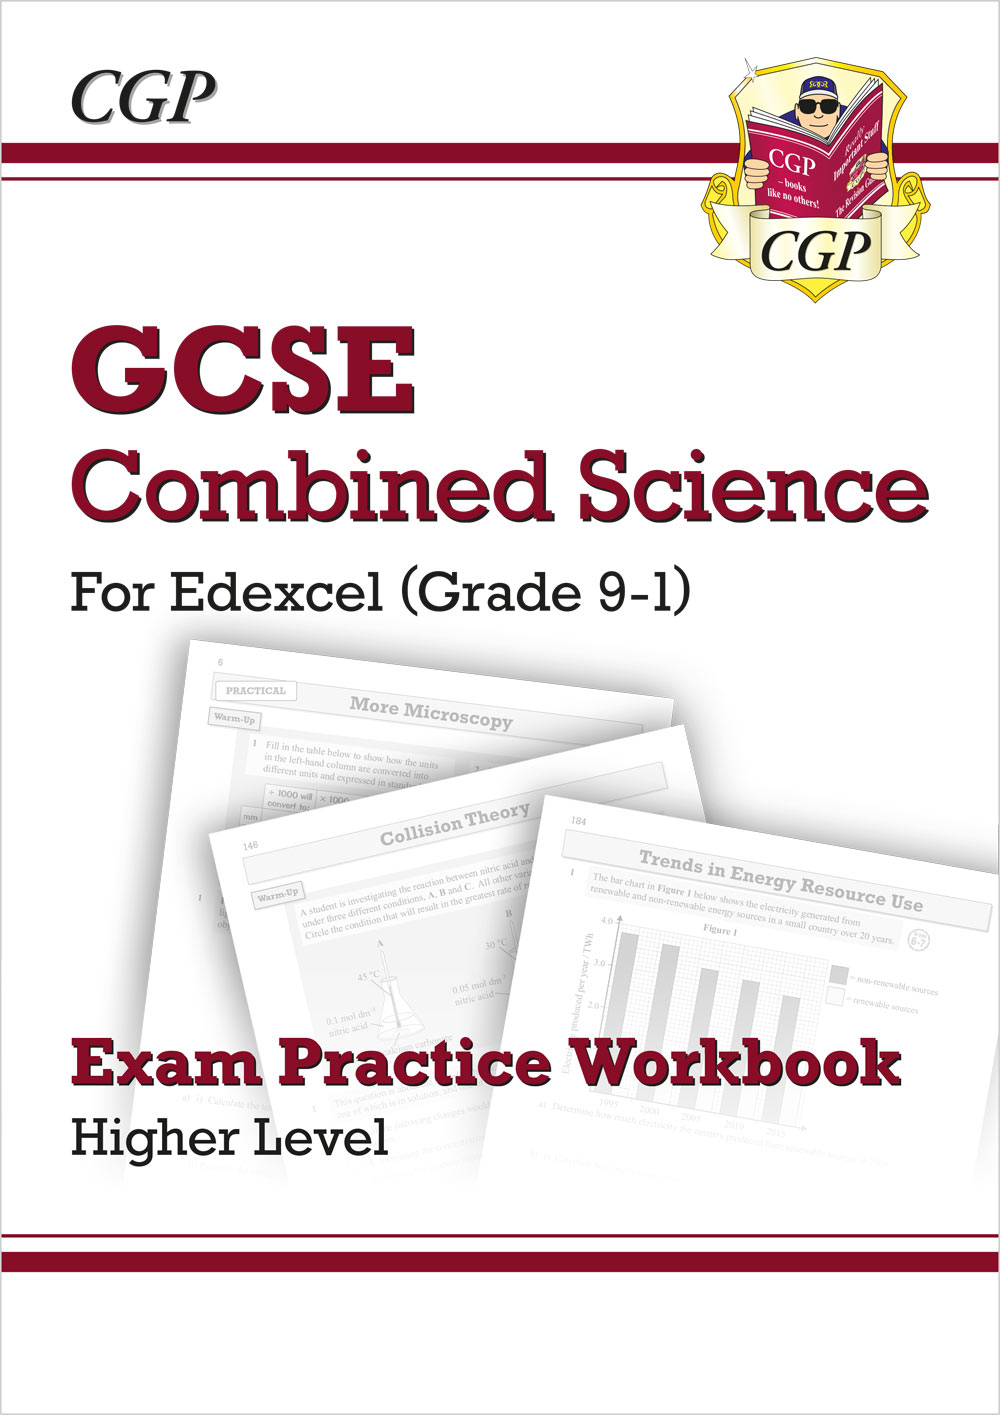 SEHQ41 - Grade 9-1 GCSE Combined Science: Edexcel Exam Practice Workbook - Higher